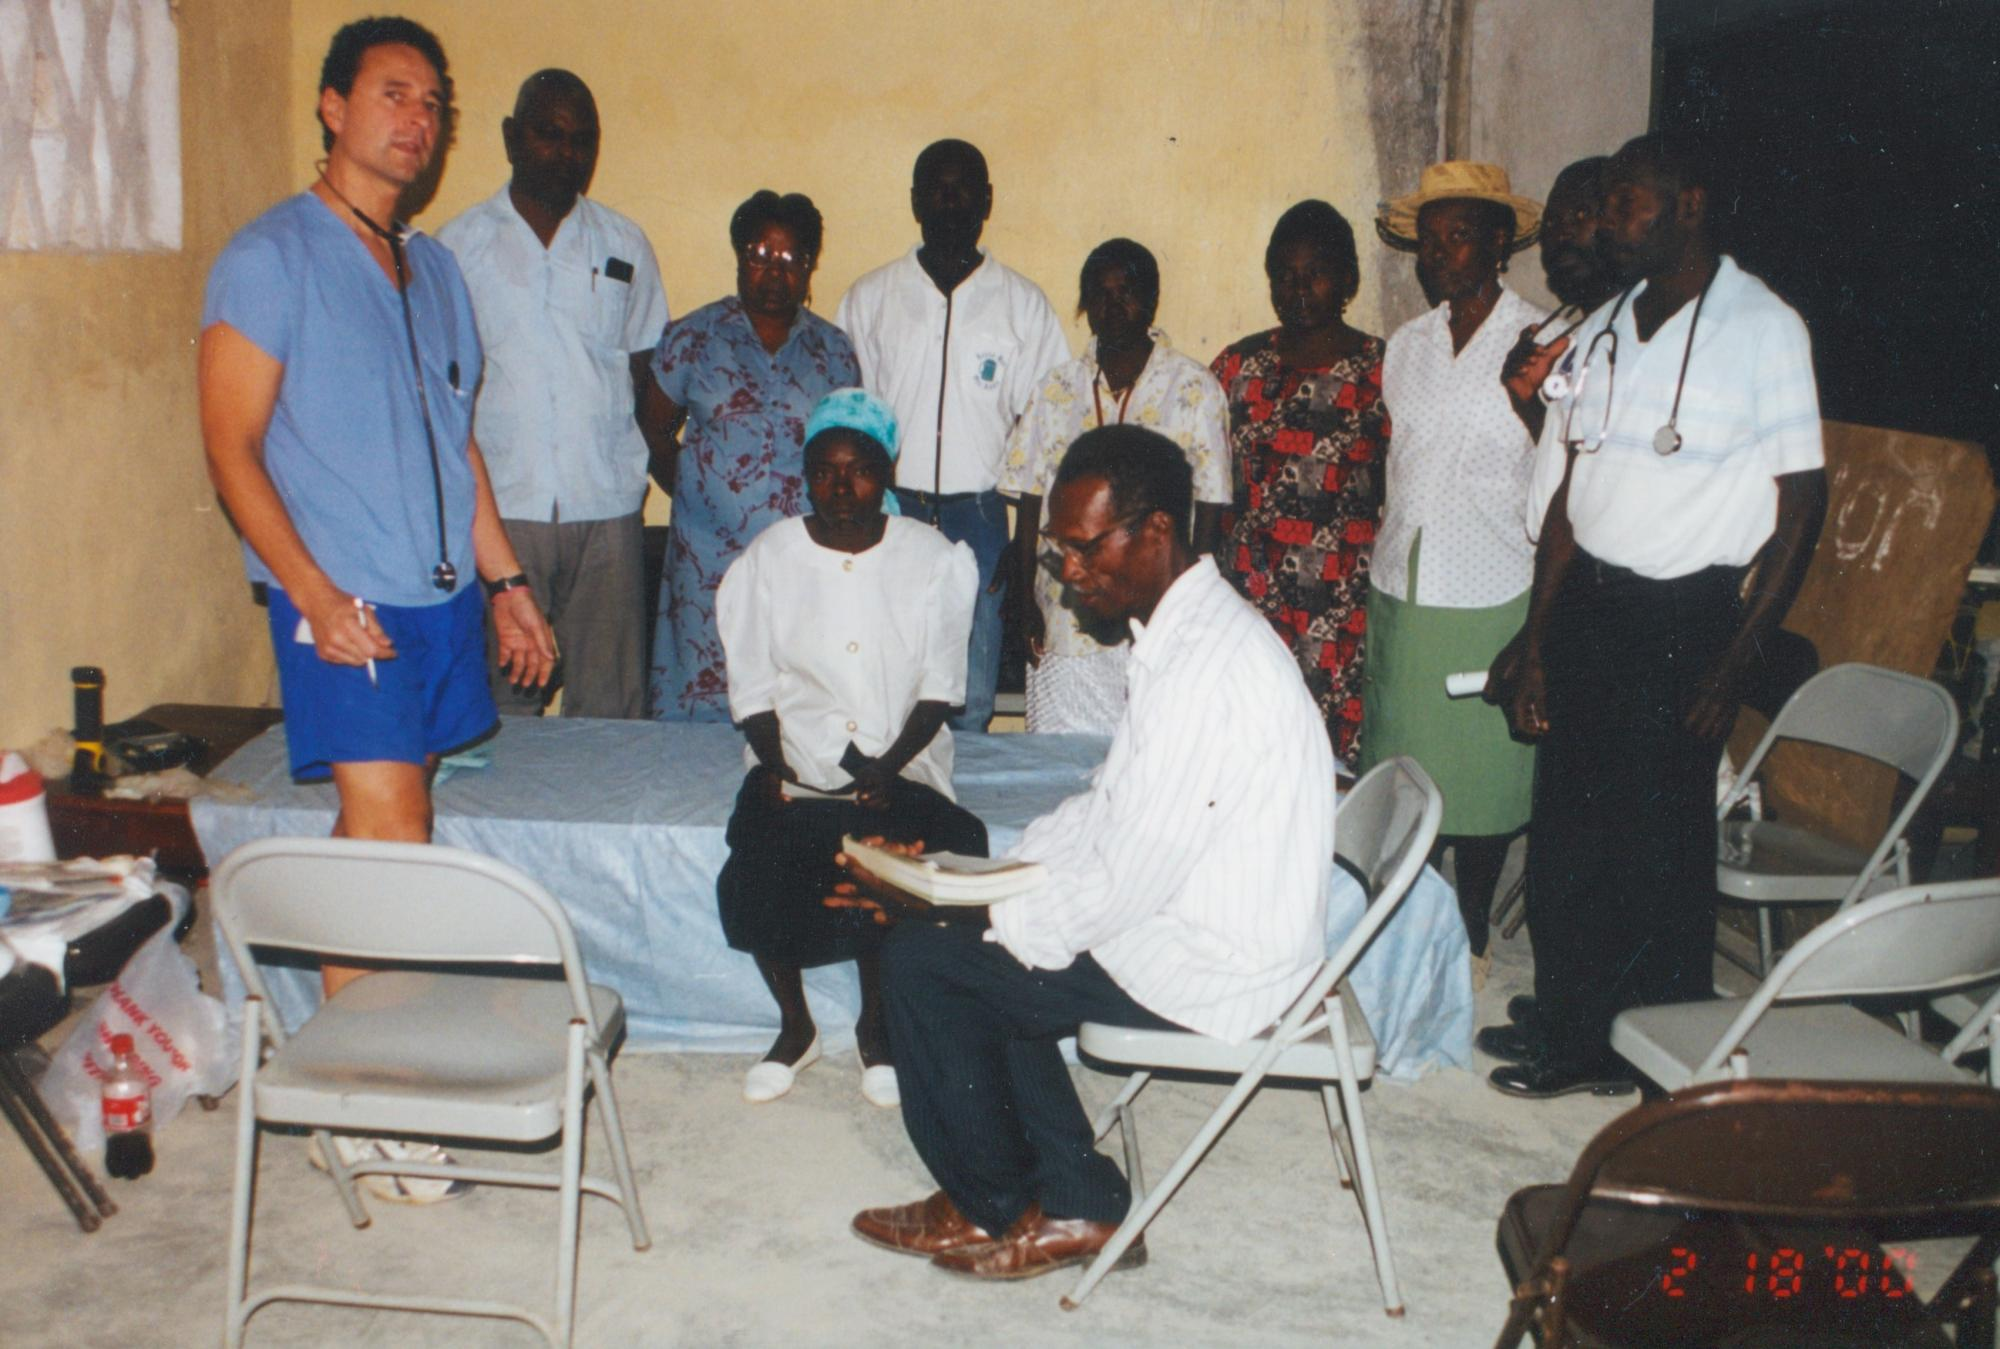 Doctor_in_shorts_with_Education_group_Feb__2000_Thiotte_image74.jpg